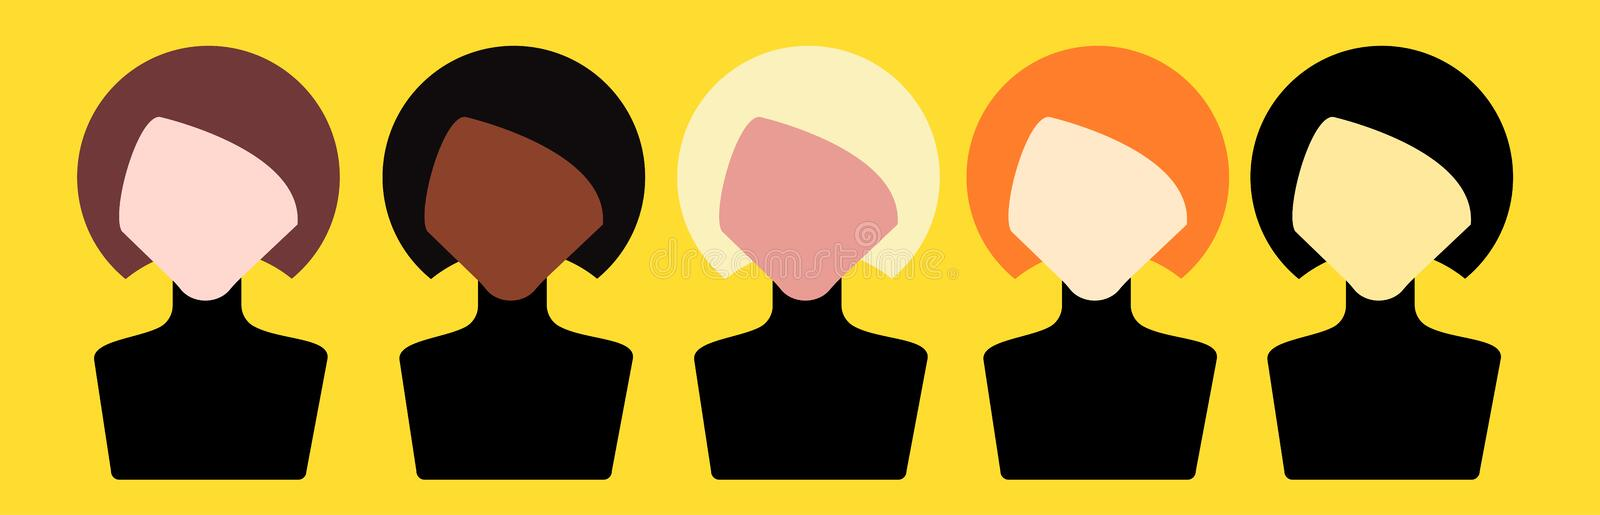 Avatar de mujeres libre illustration